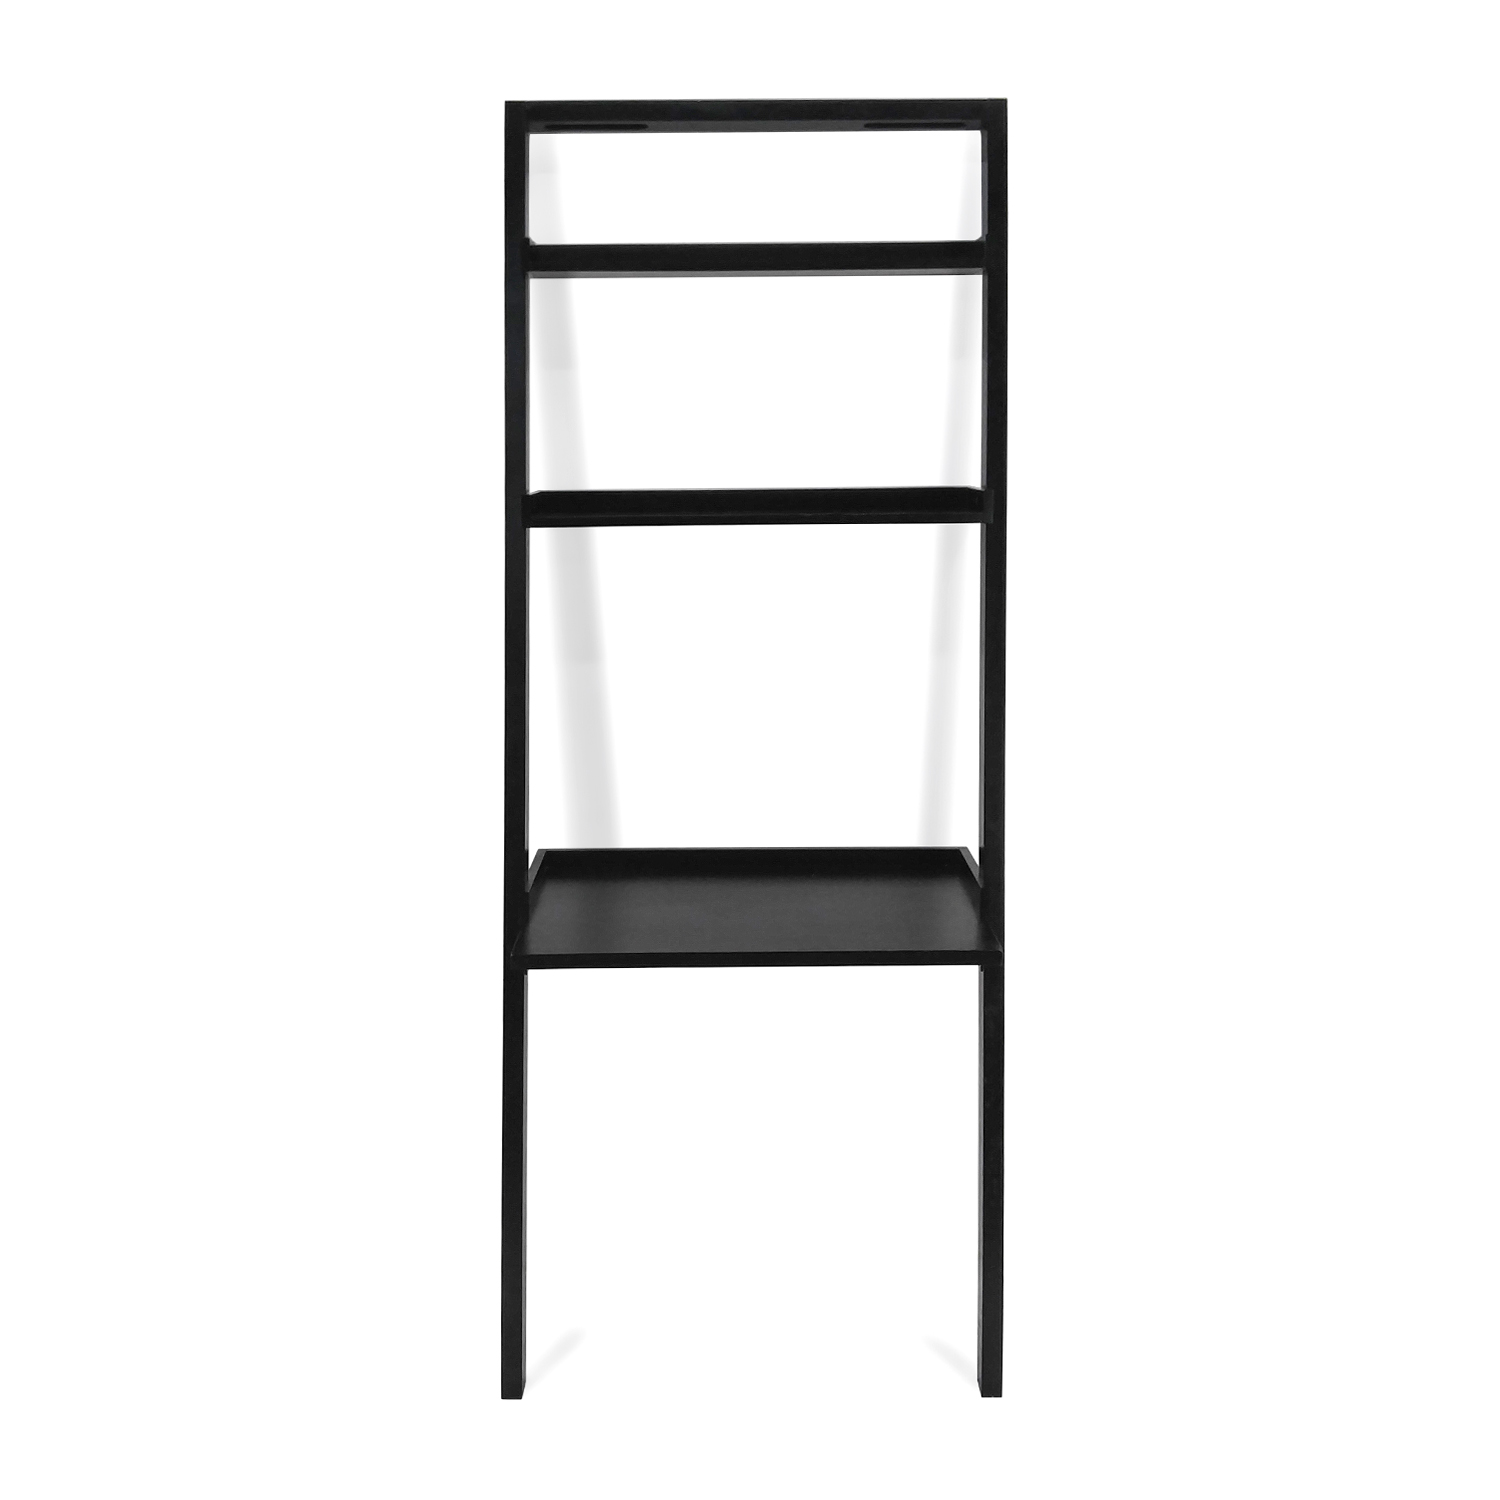 shelves fastened shelf bowl buystring shelving wall with side drawer white main desk chest pdp racks work and rsp string unit